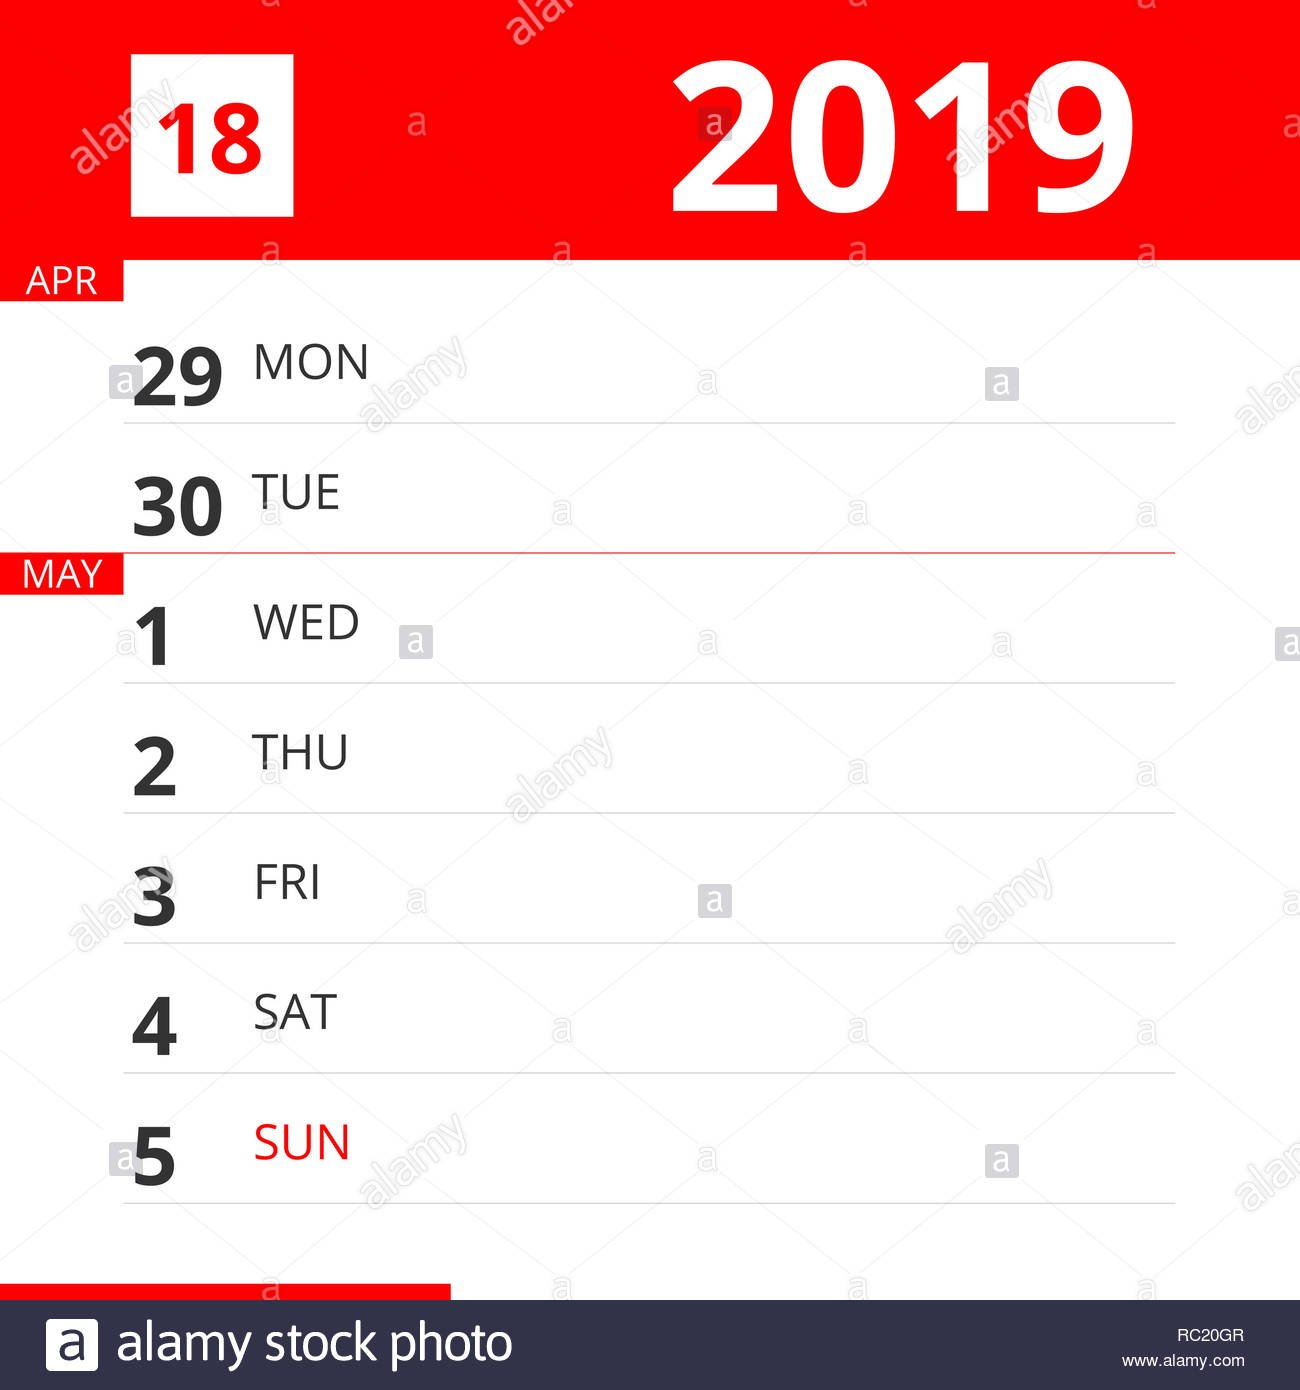 Calendar Planner For Week 18 In 2019, Ends May 5, 2019 Stock Photo Calendar May 5Th 2019